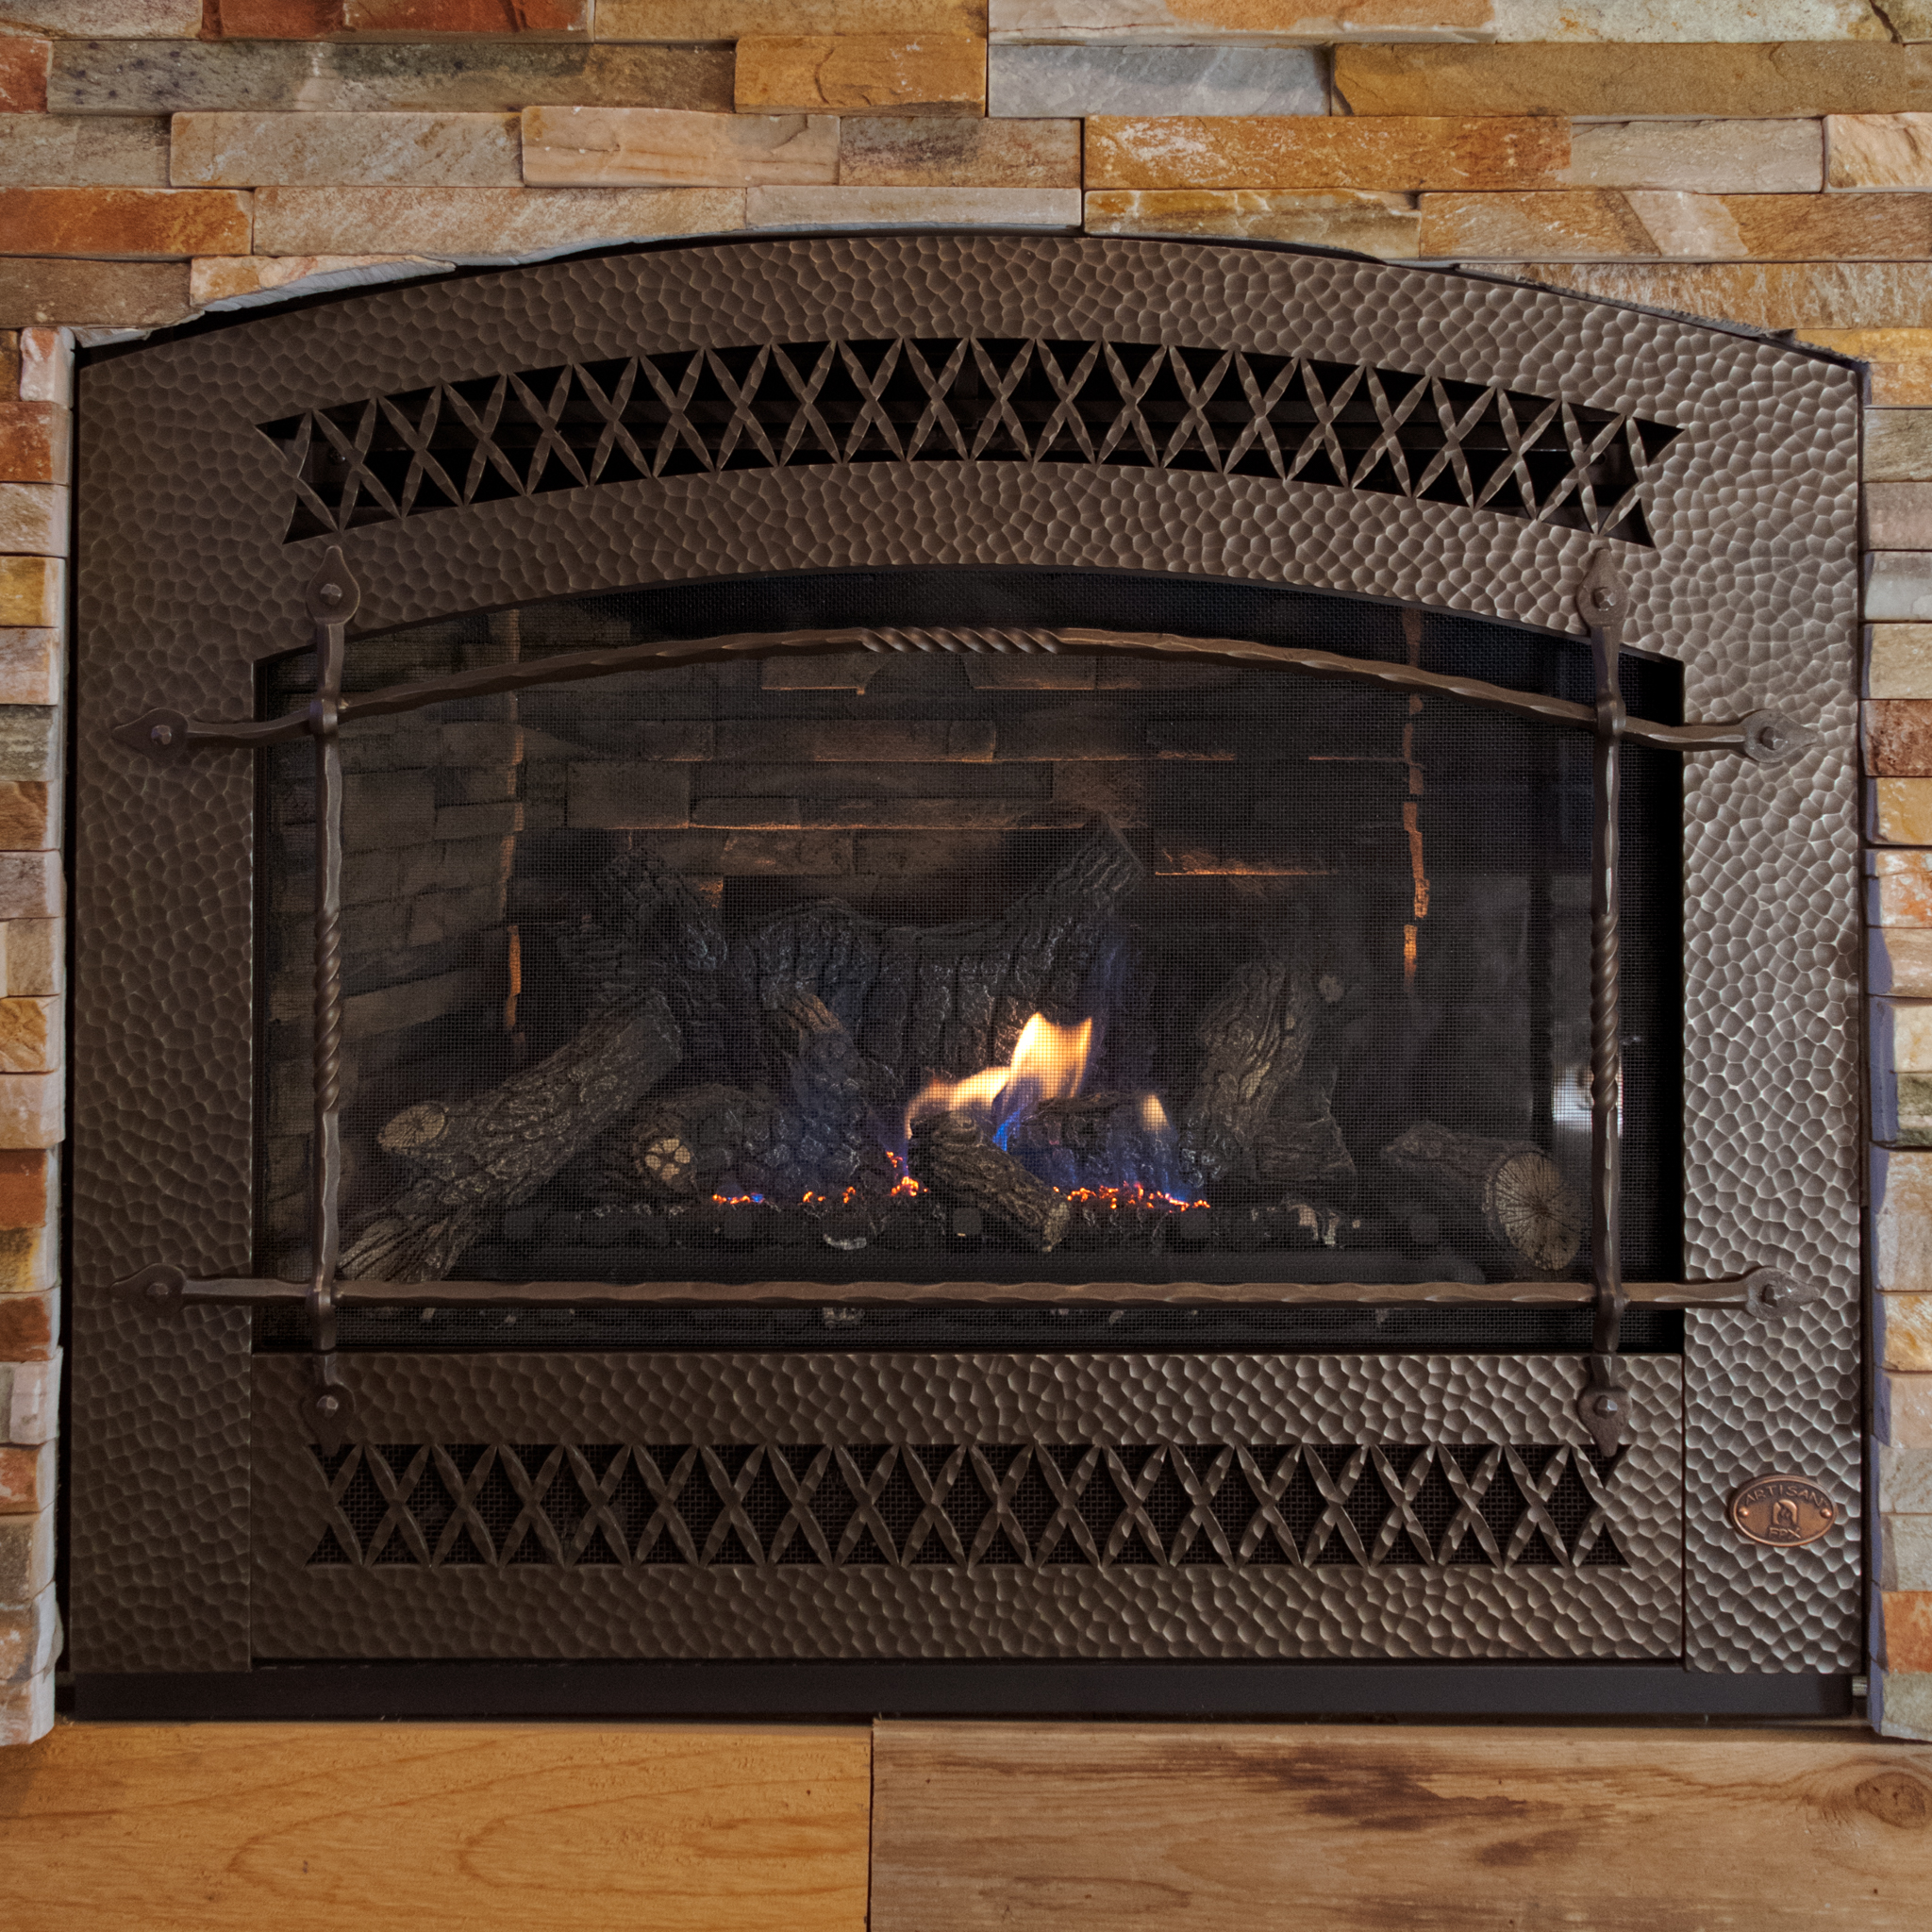 FireplaceX 564 HO - ‧ Direct Vent Gas Fireplace - 35,000 BTU‧ Ledgestone Firebox Panels‧ Artisan Front - Bronze‧ Ember-Fyre Burner with Logs‧ Green Smart Remote Control‧ Fan‧ Strong heater‧ Stylish hammered Artisan Front‧ Highly reliable